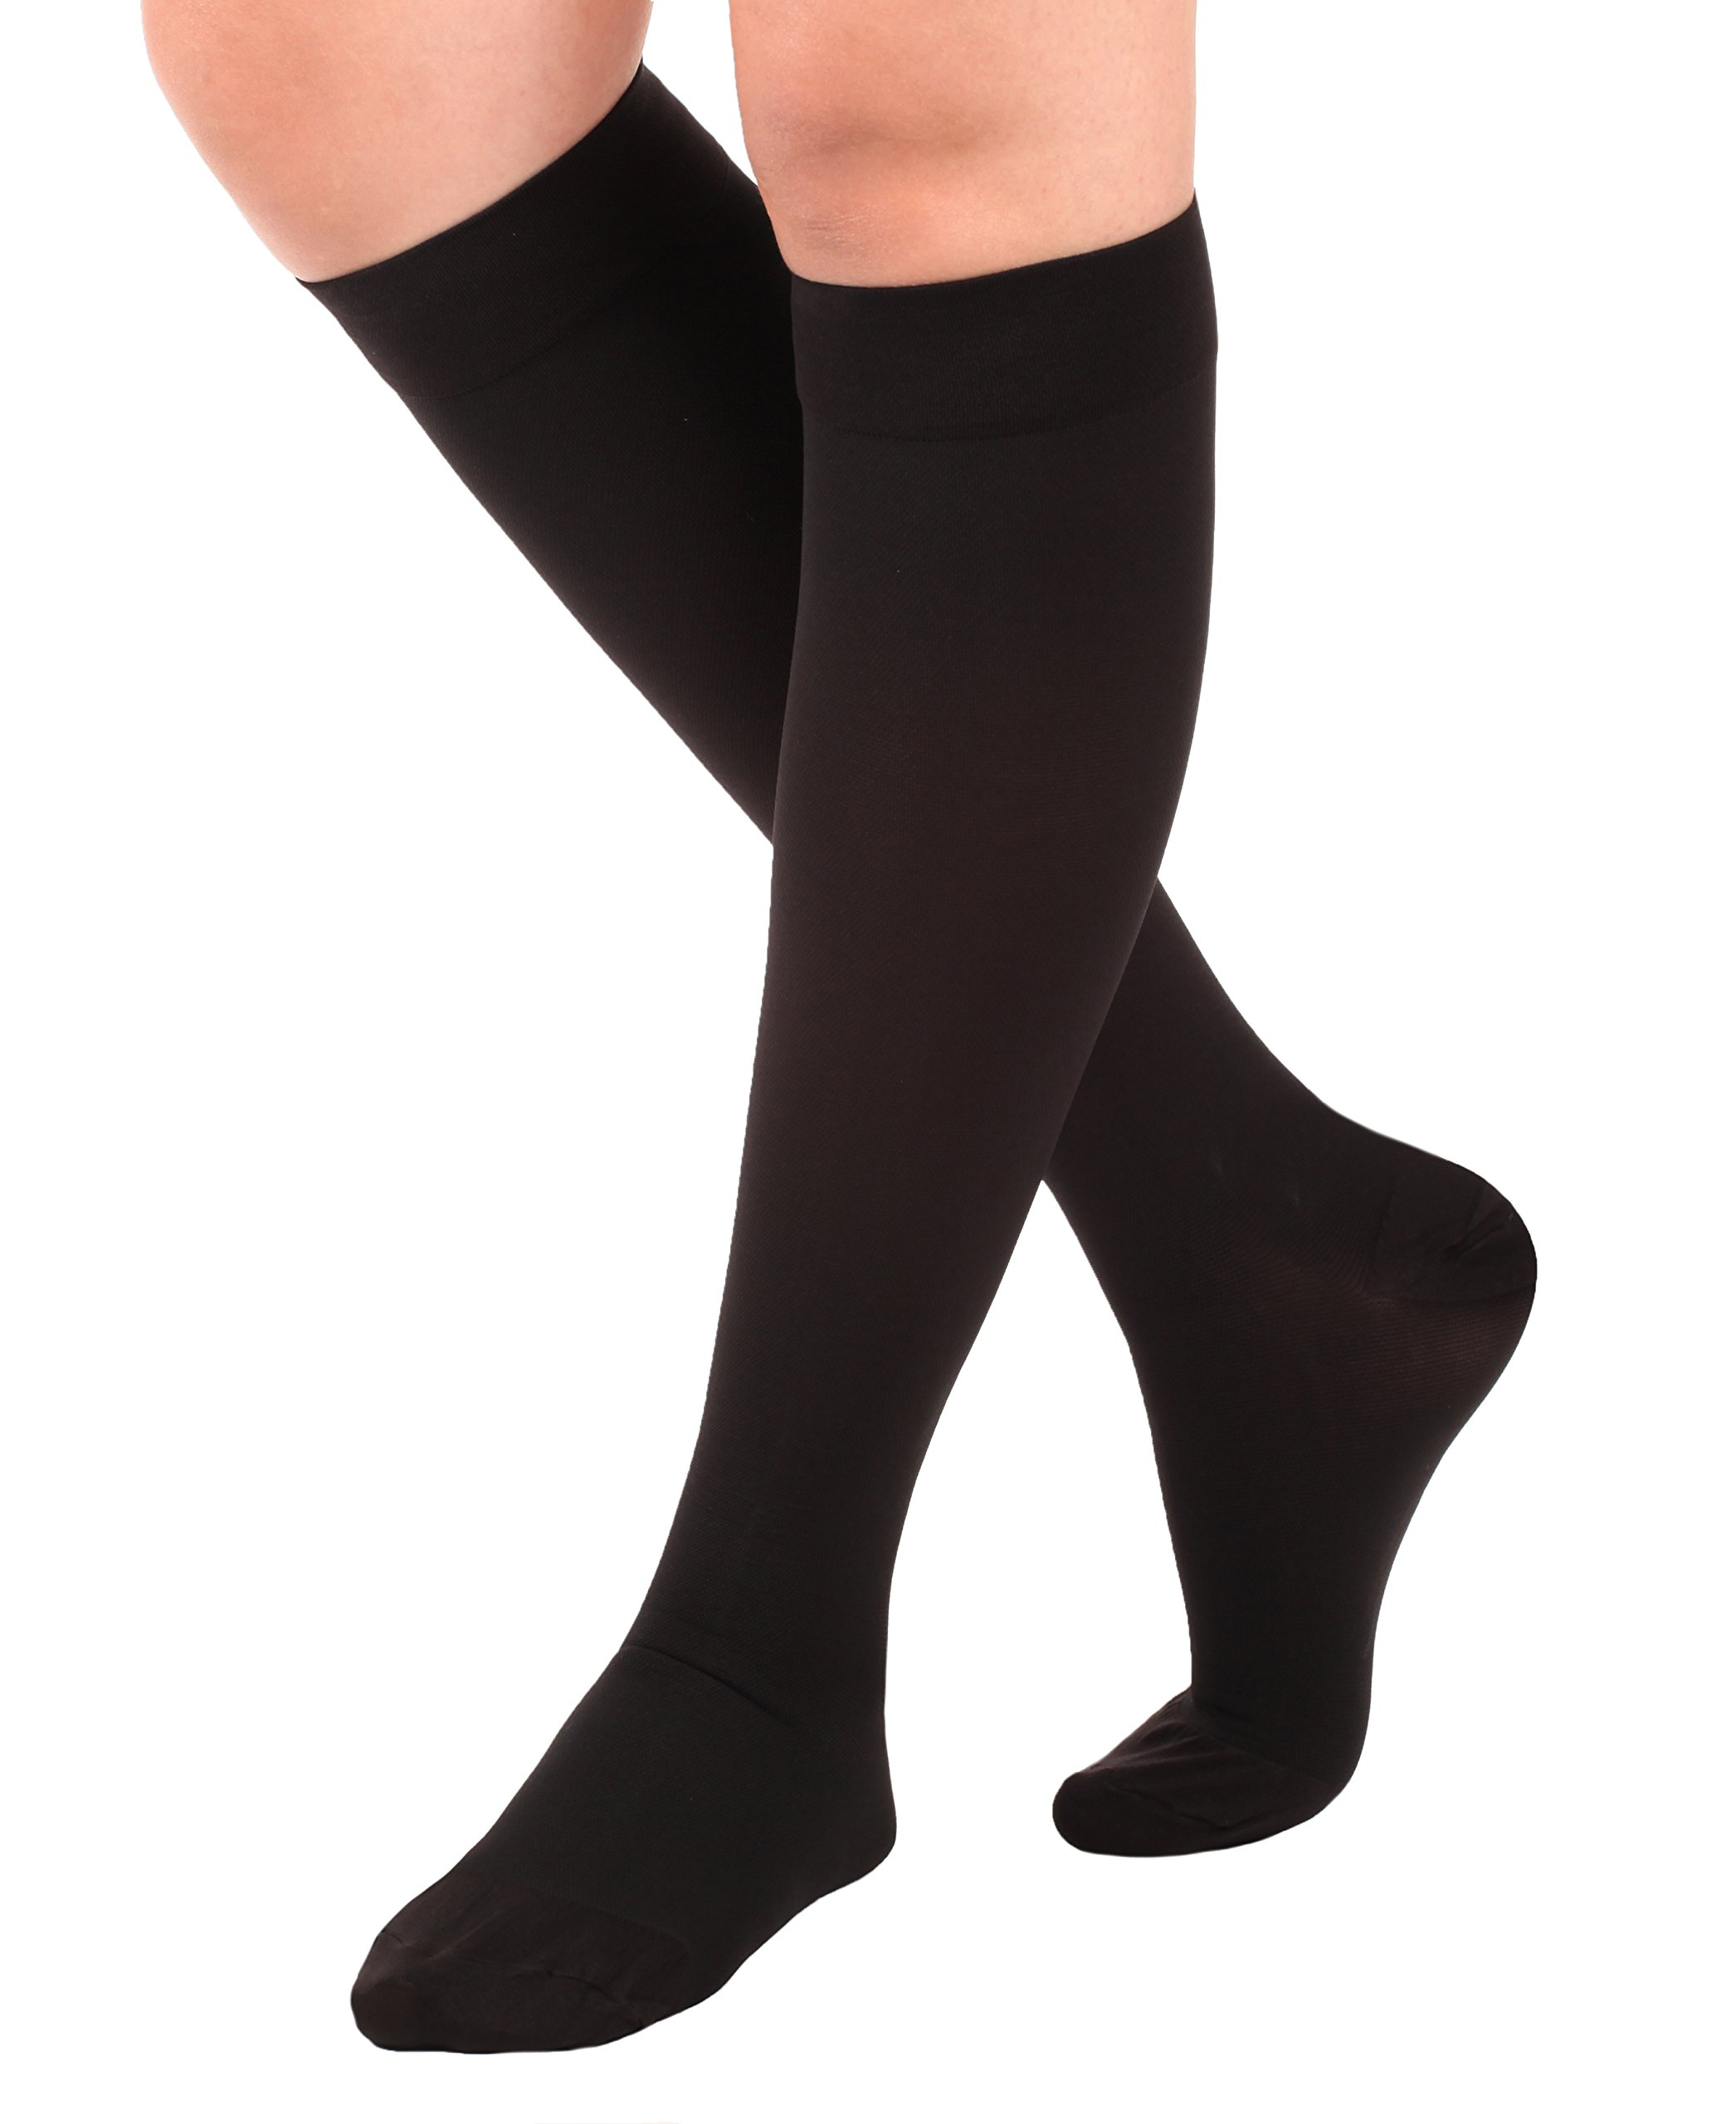 Made in the USA - Opaque Compression Socks, Knee-Hi - Firm Medical Support Hose - Closed Toe, 20-30 mmHg Graduated Compression Stockings (Size: Medium, Black) Support Stockings for Men and Woman